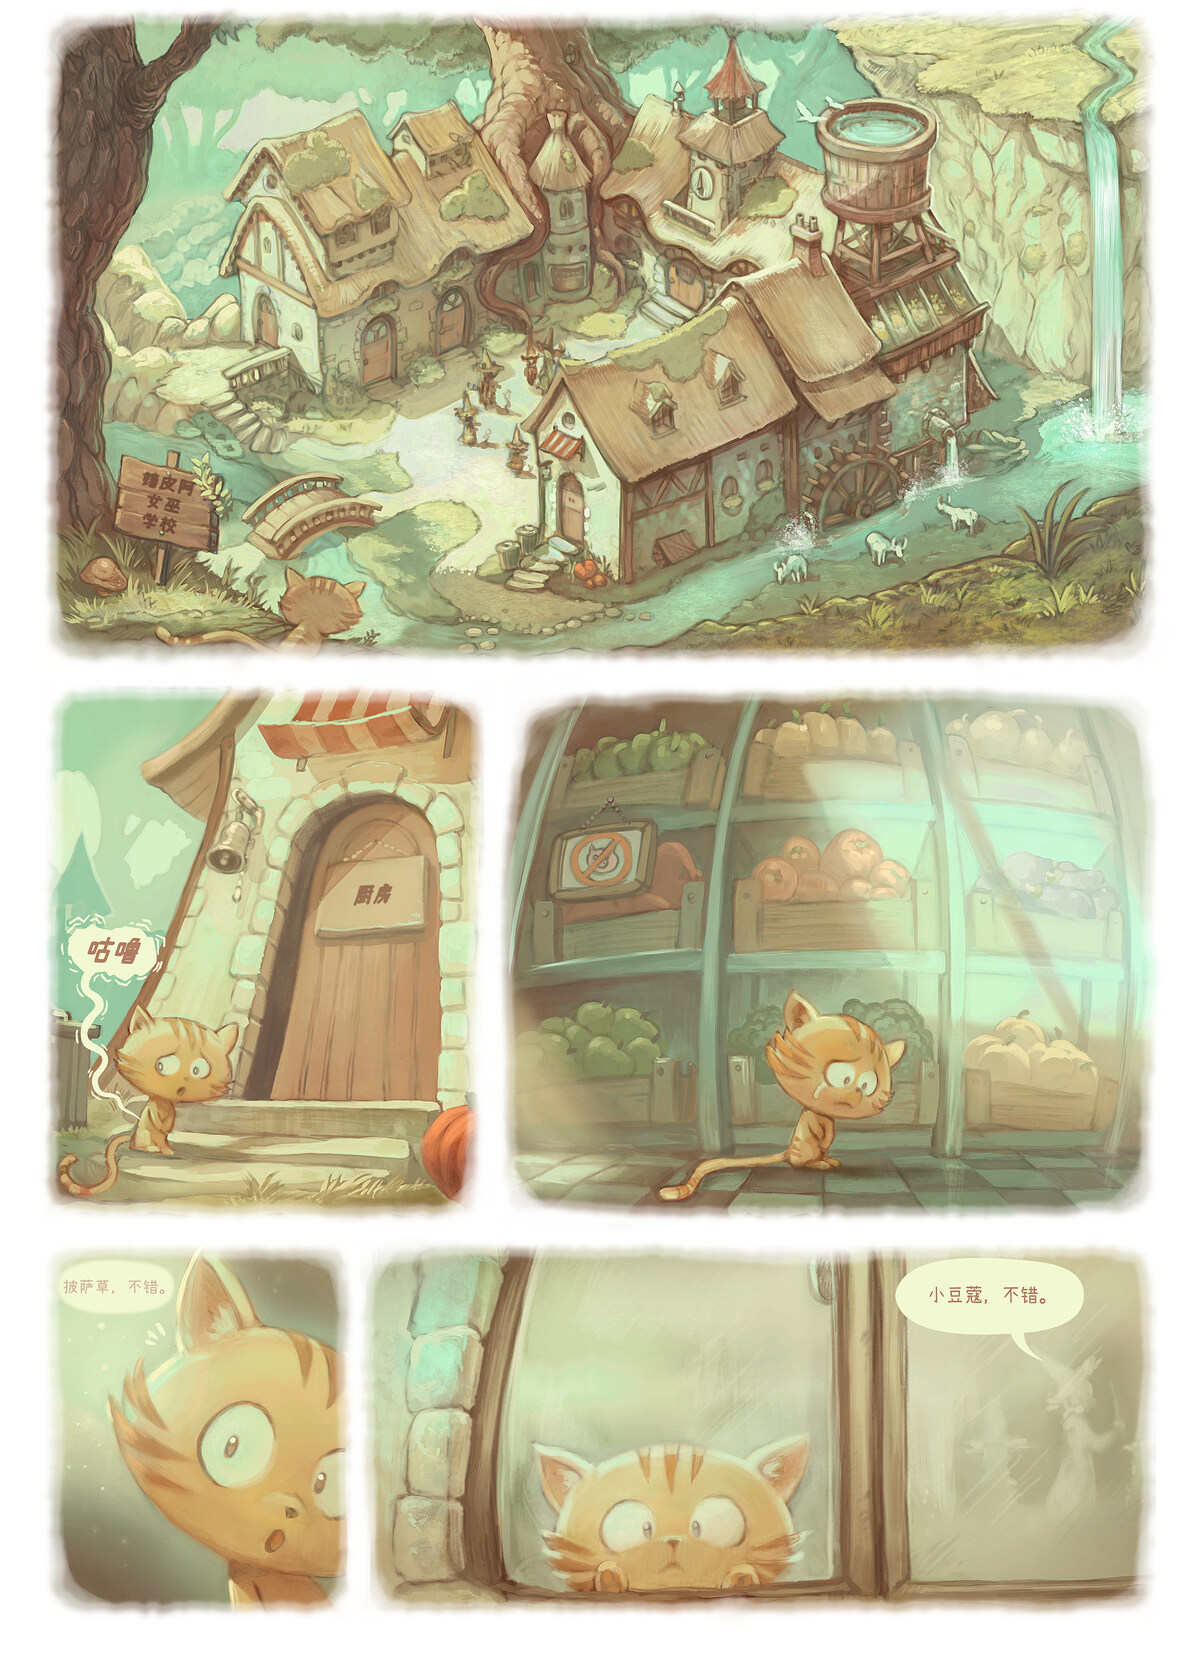 A webcomic page of Pepper&Carrot, 漫画全集 18 [cn], 页面 2